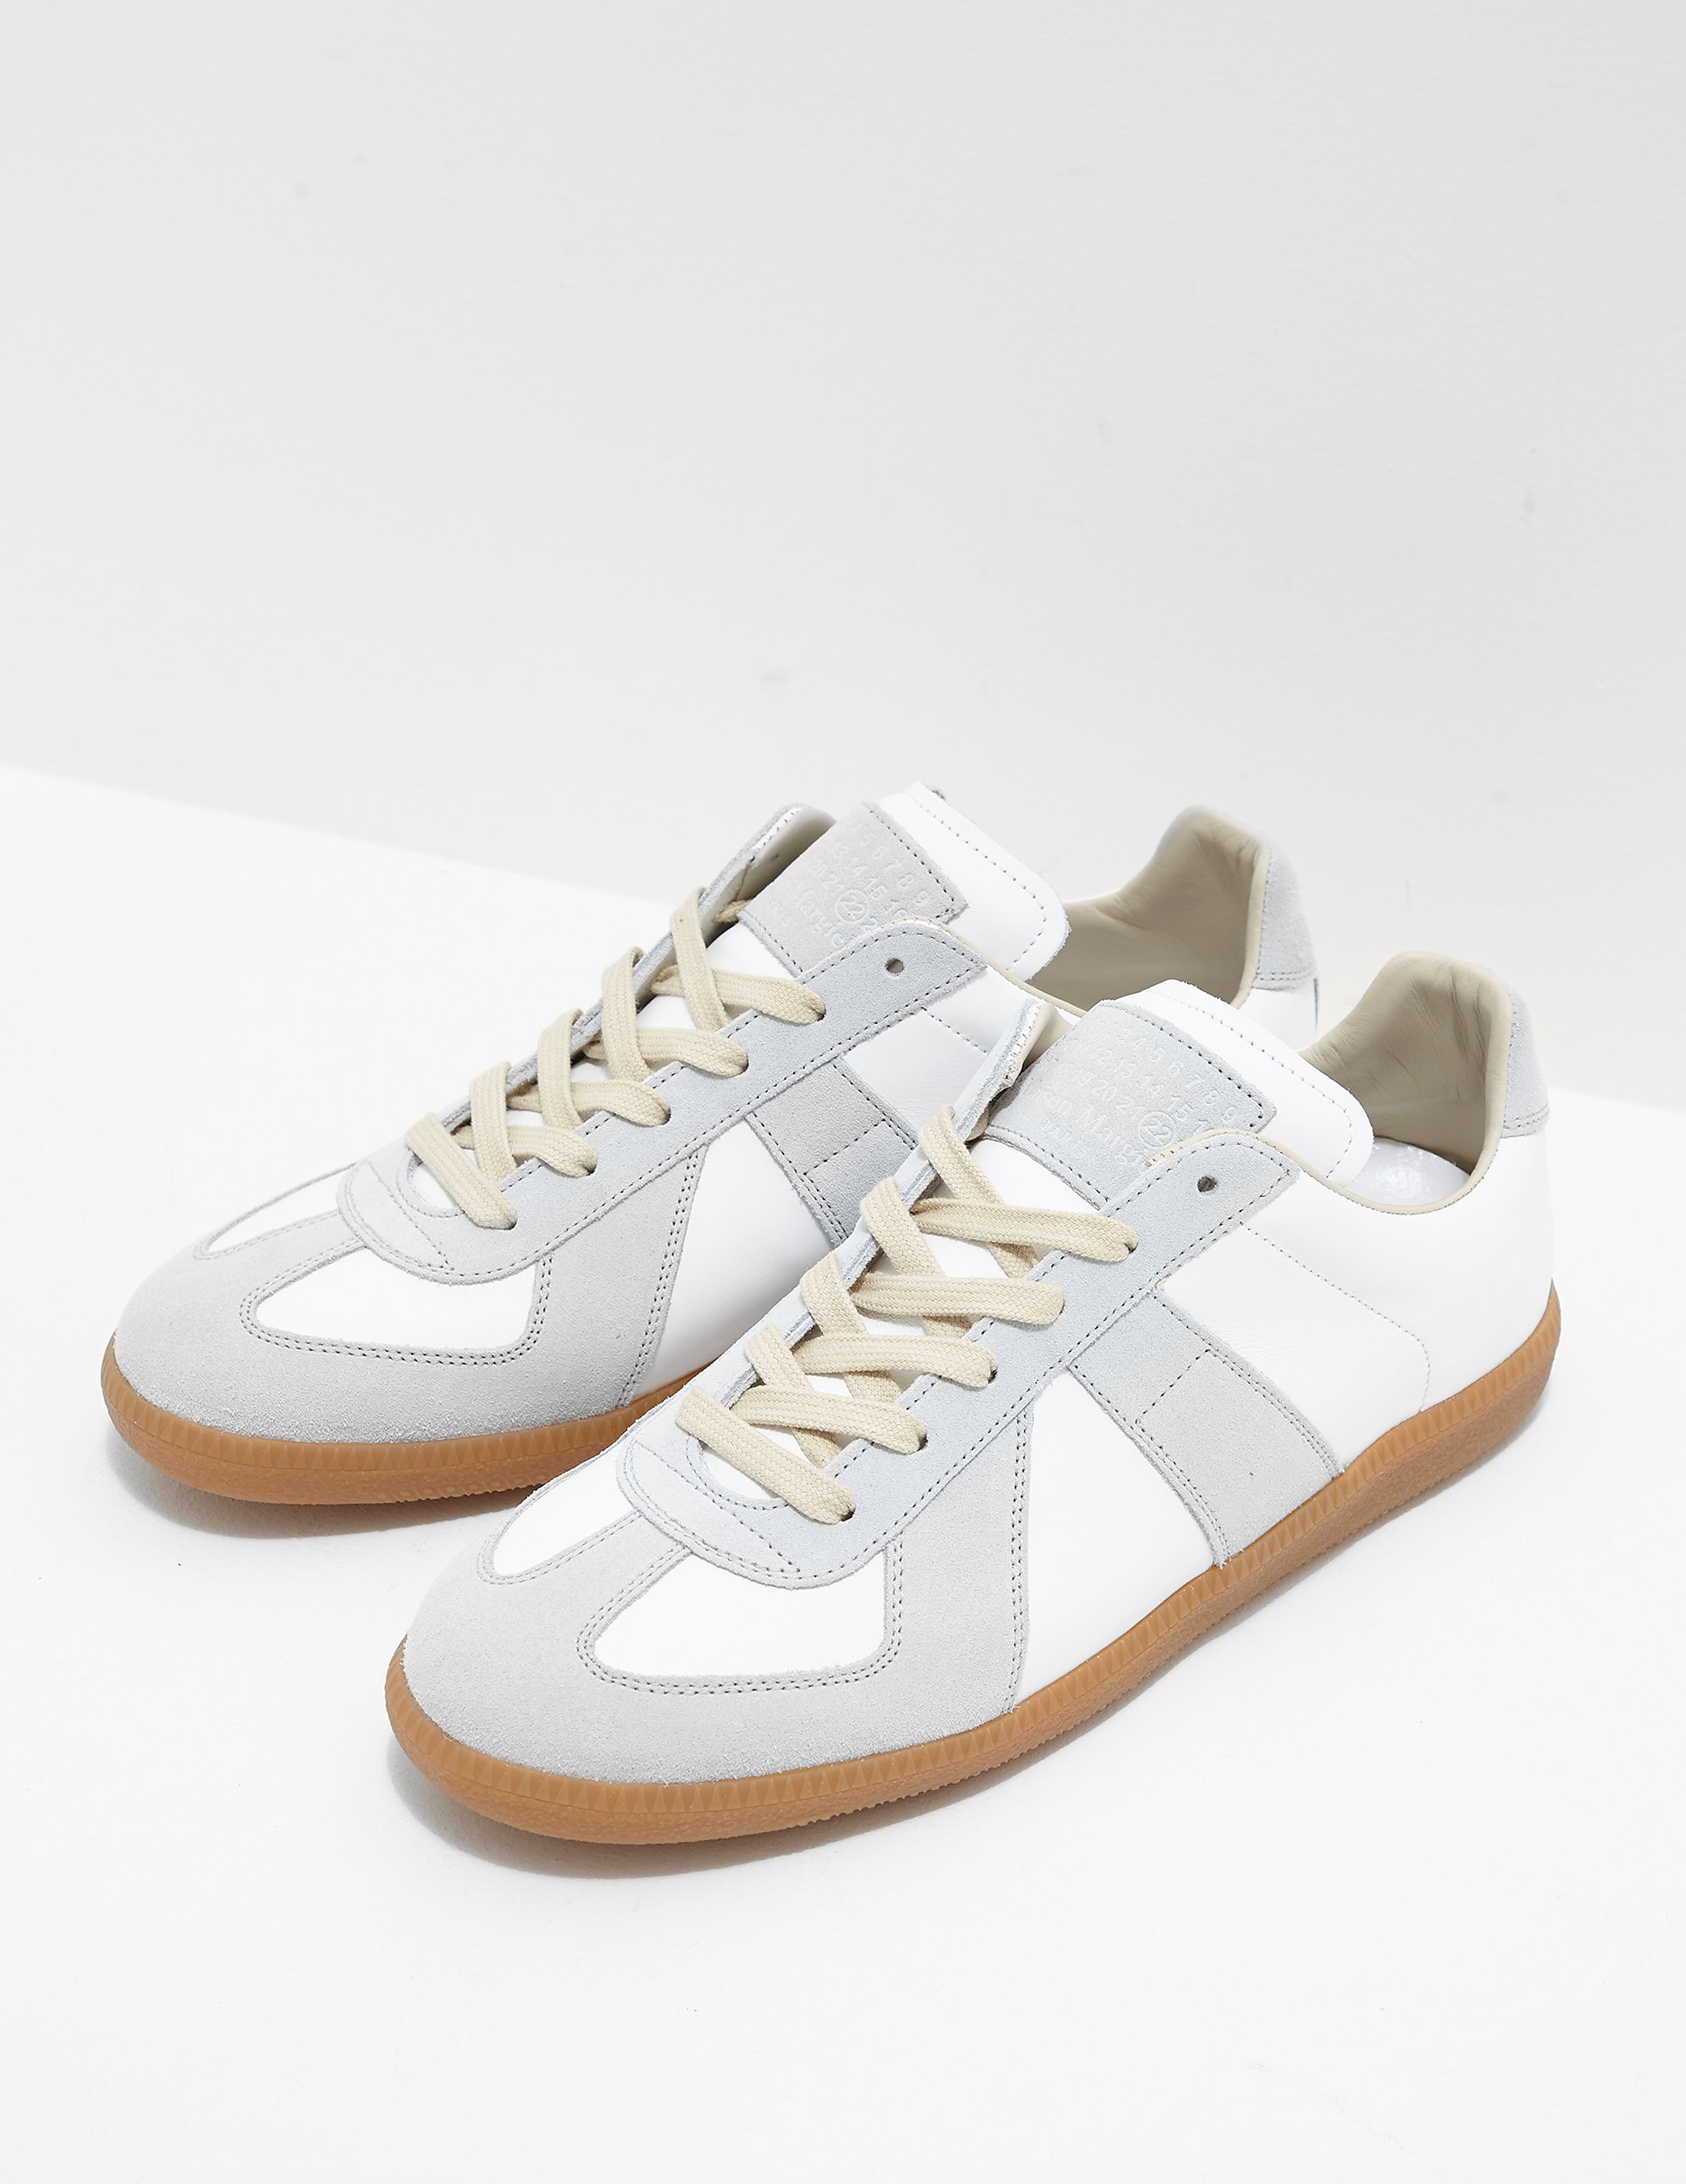 Maison Margiela Replica Trainers